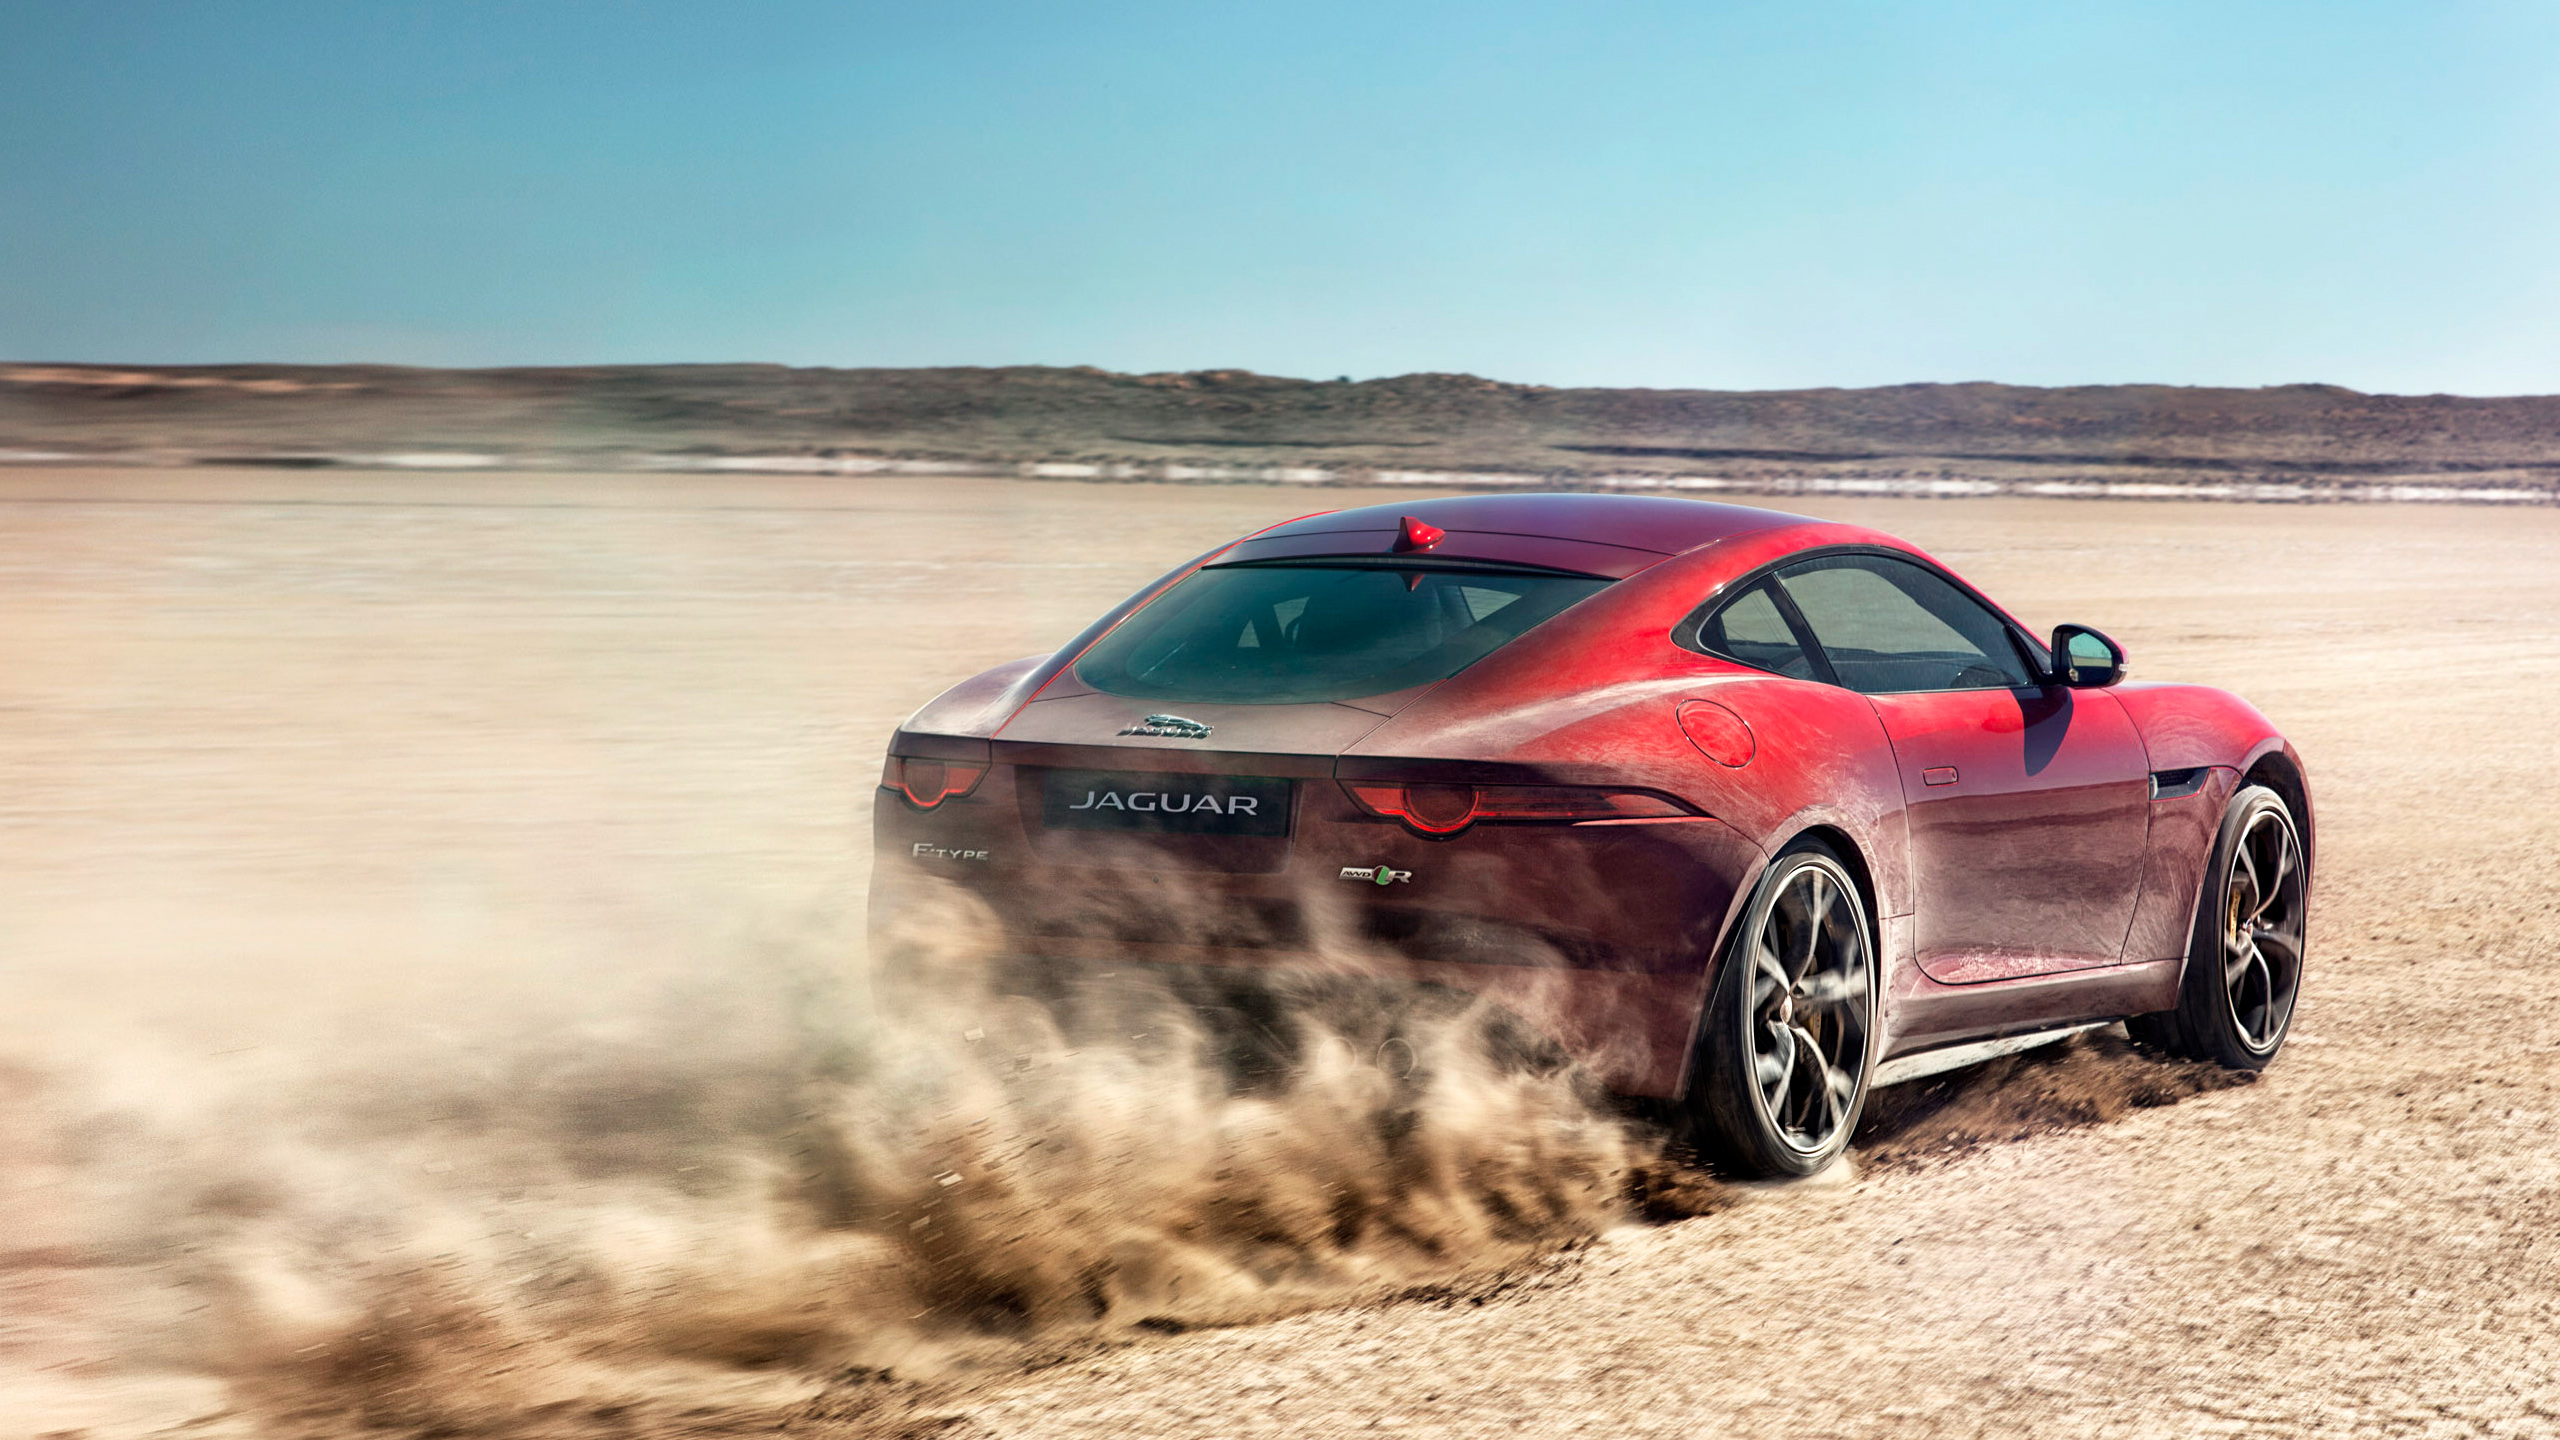 First Drive 2018 Porsche 911 Gt2 Rs Review besides M635csi further Default likewise Opel Diplomat further 2016 jaguar f type r coupe all wheel drive Wallpapers. on alfa romeo coupe